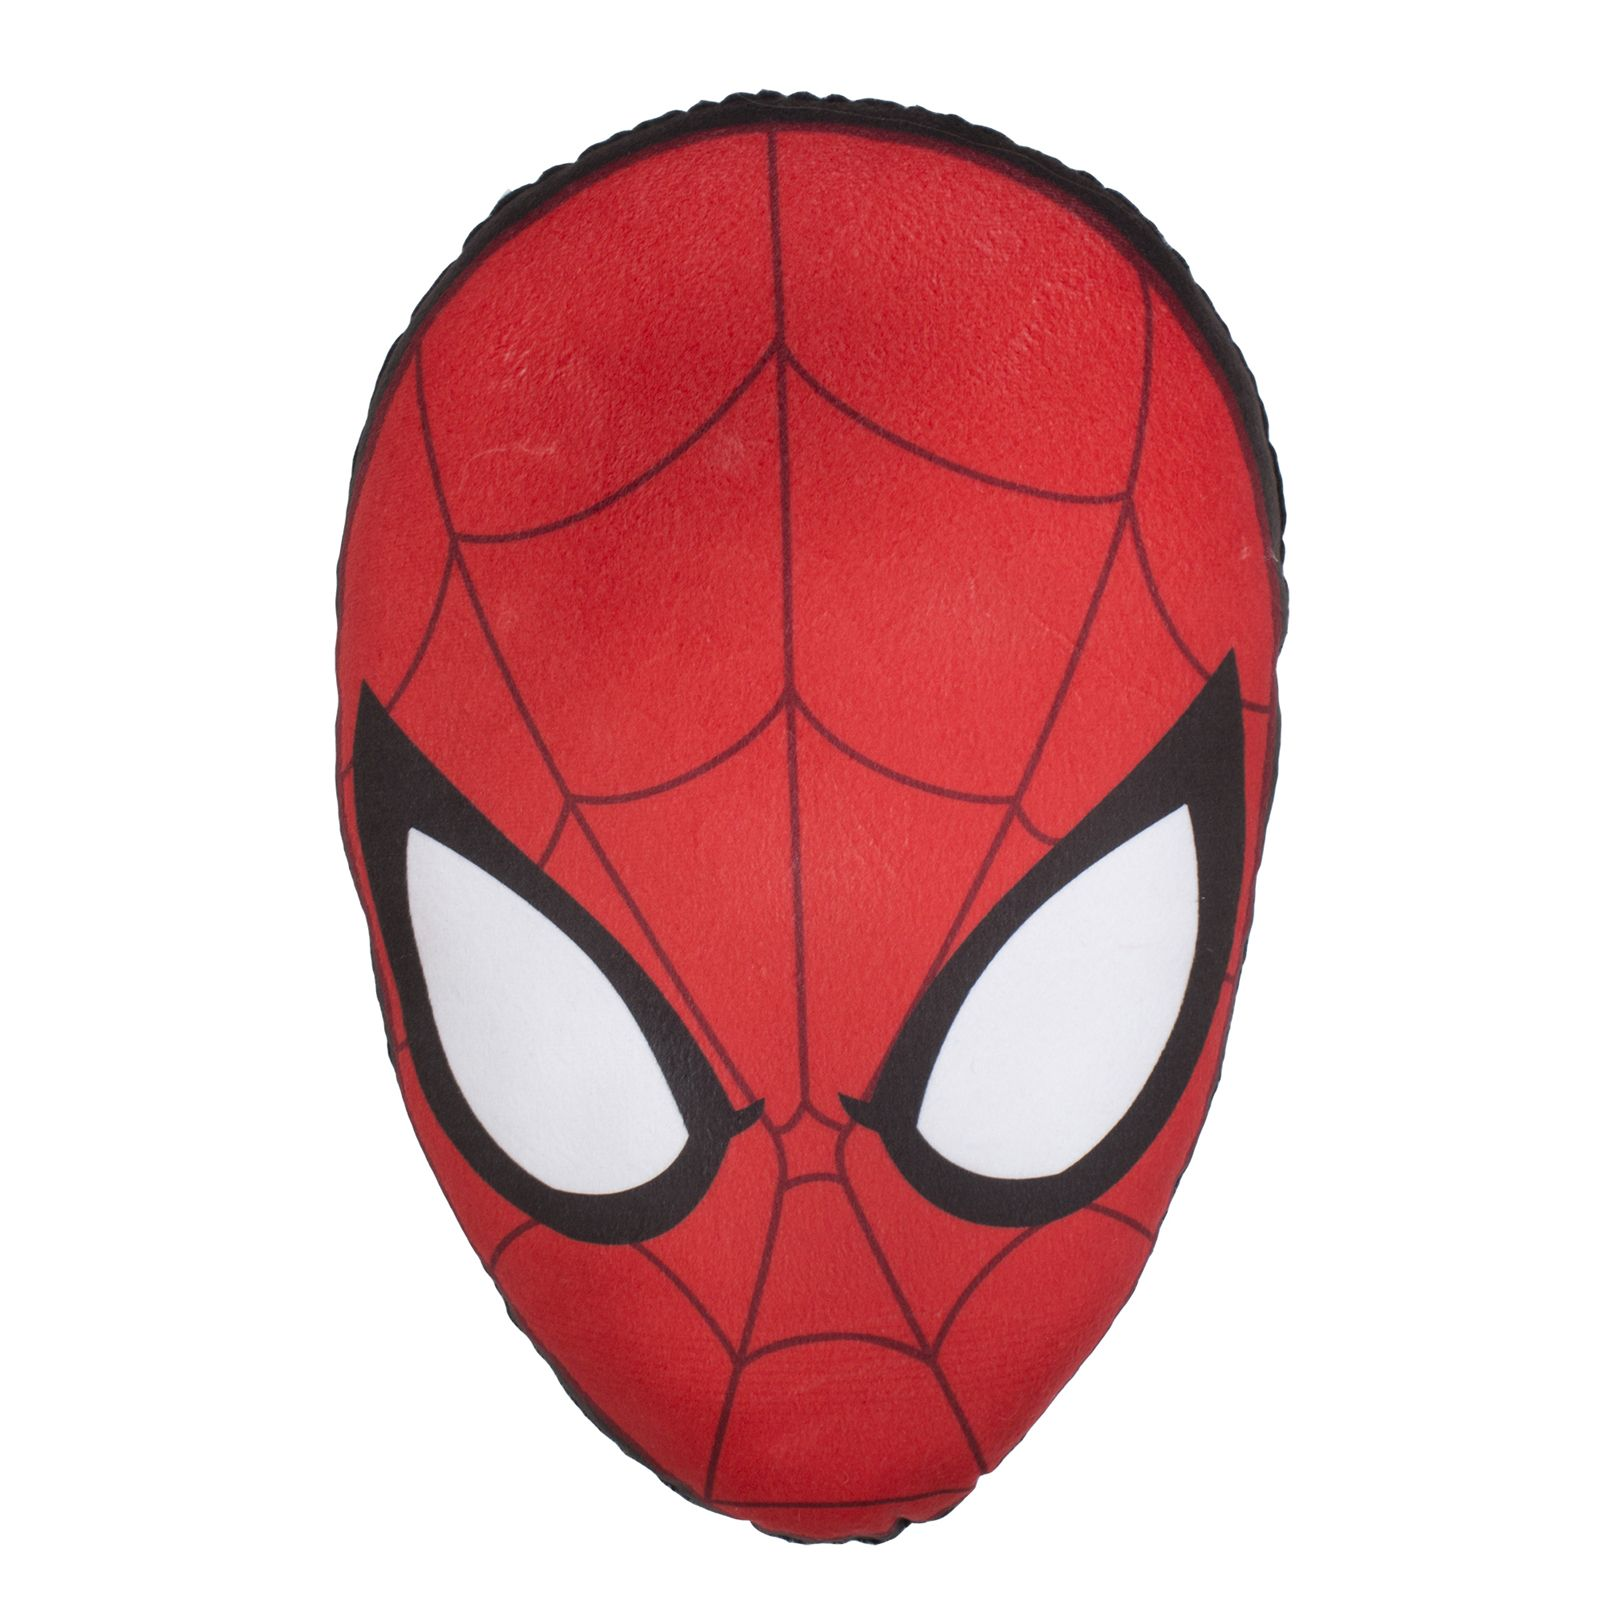 Cool beds for boys - Details About Spiderman Head Shaped Cushion New Official Marvel Spider